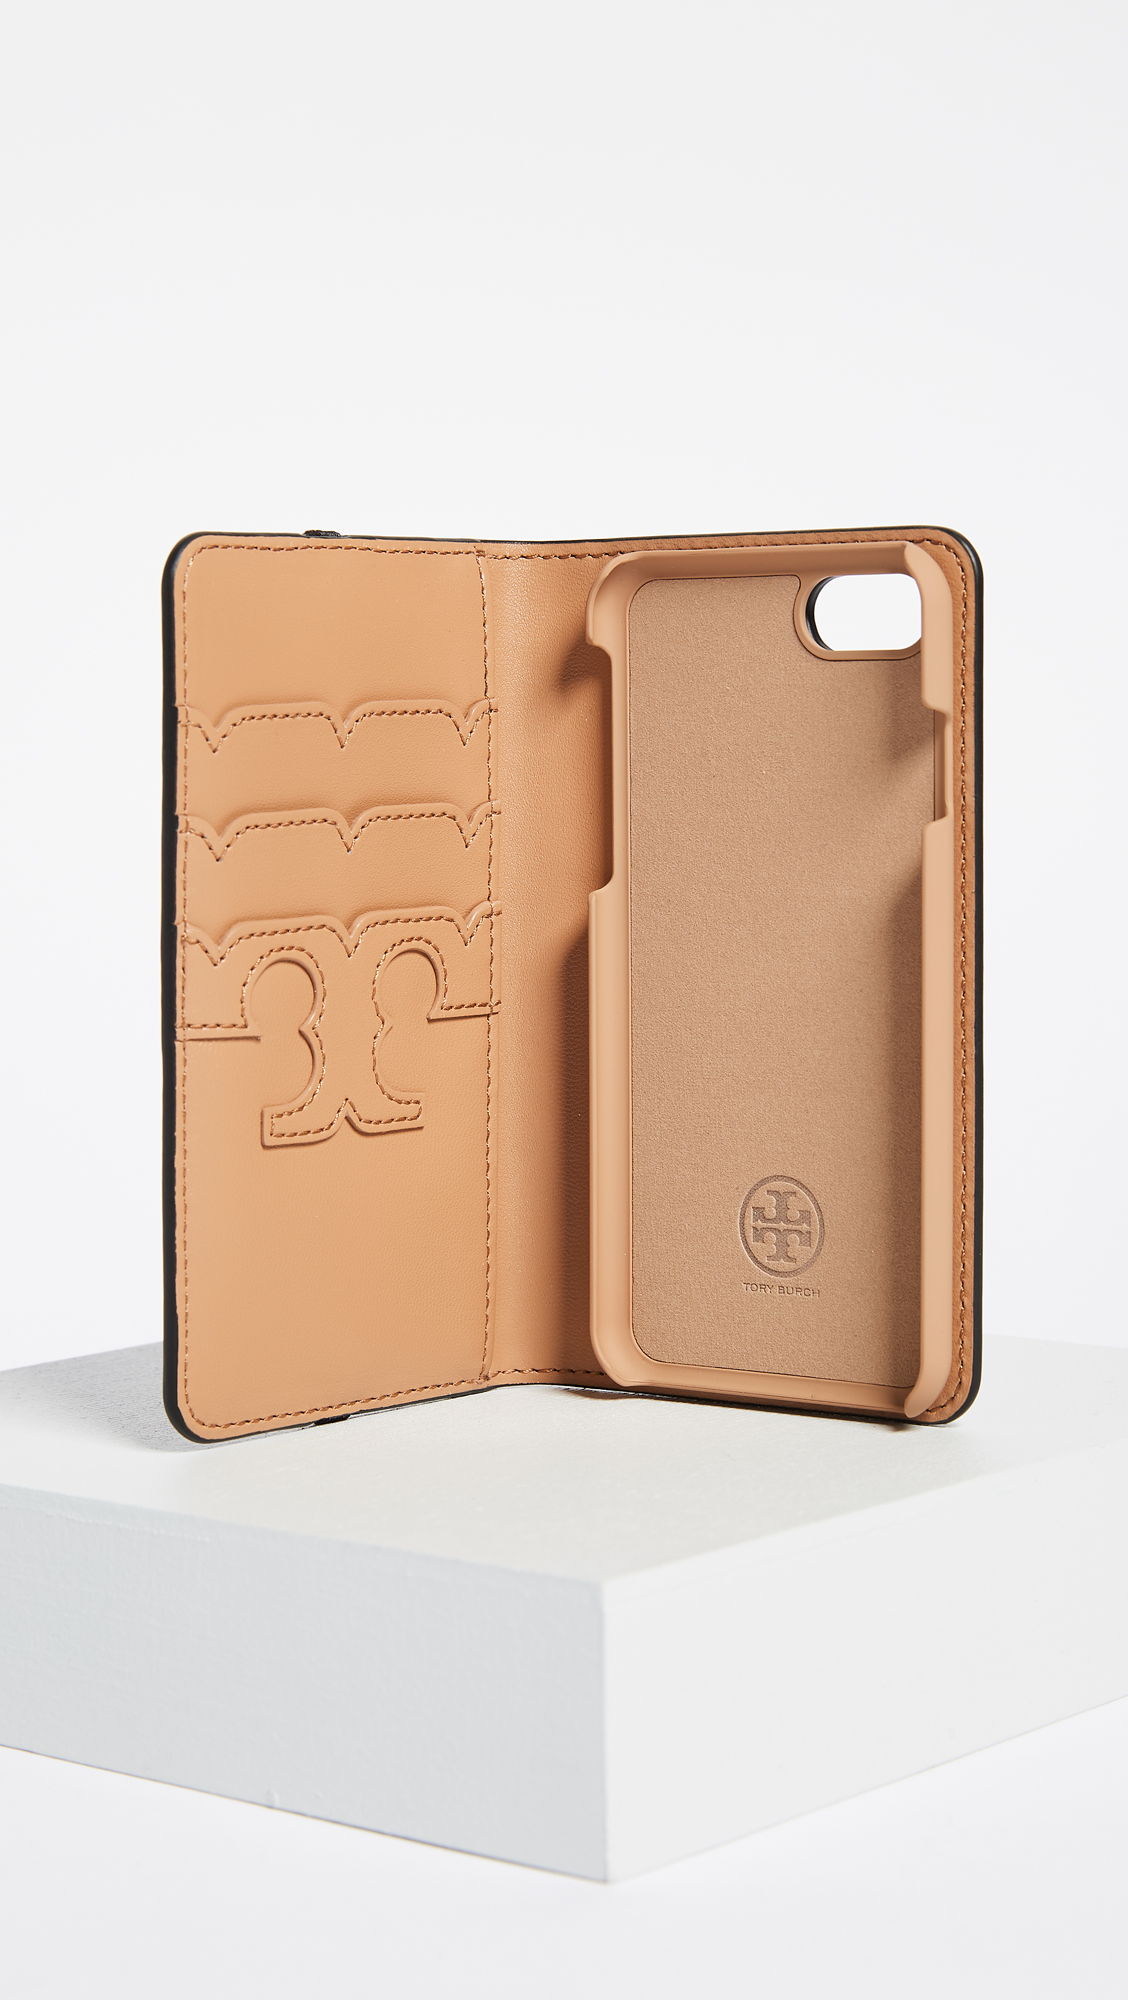 separation shoes 0785b 38edd Tory Burch Parker Leather Folio iPhone 7 / 8 Case | SHOPBOP